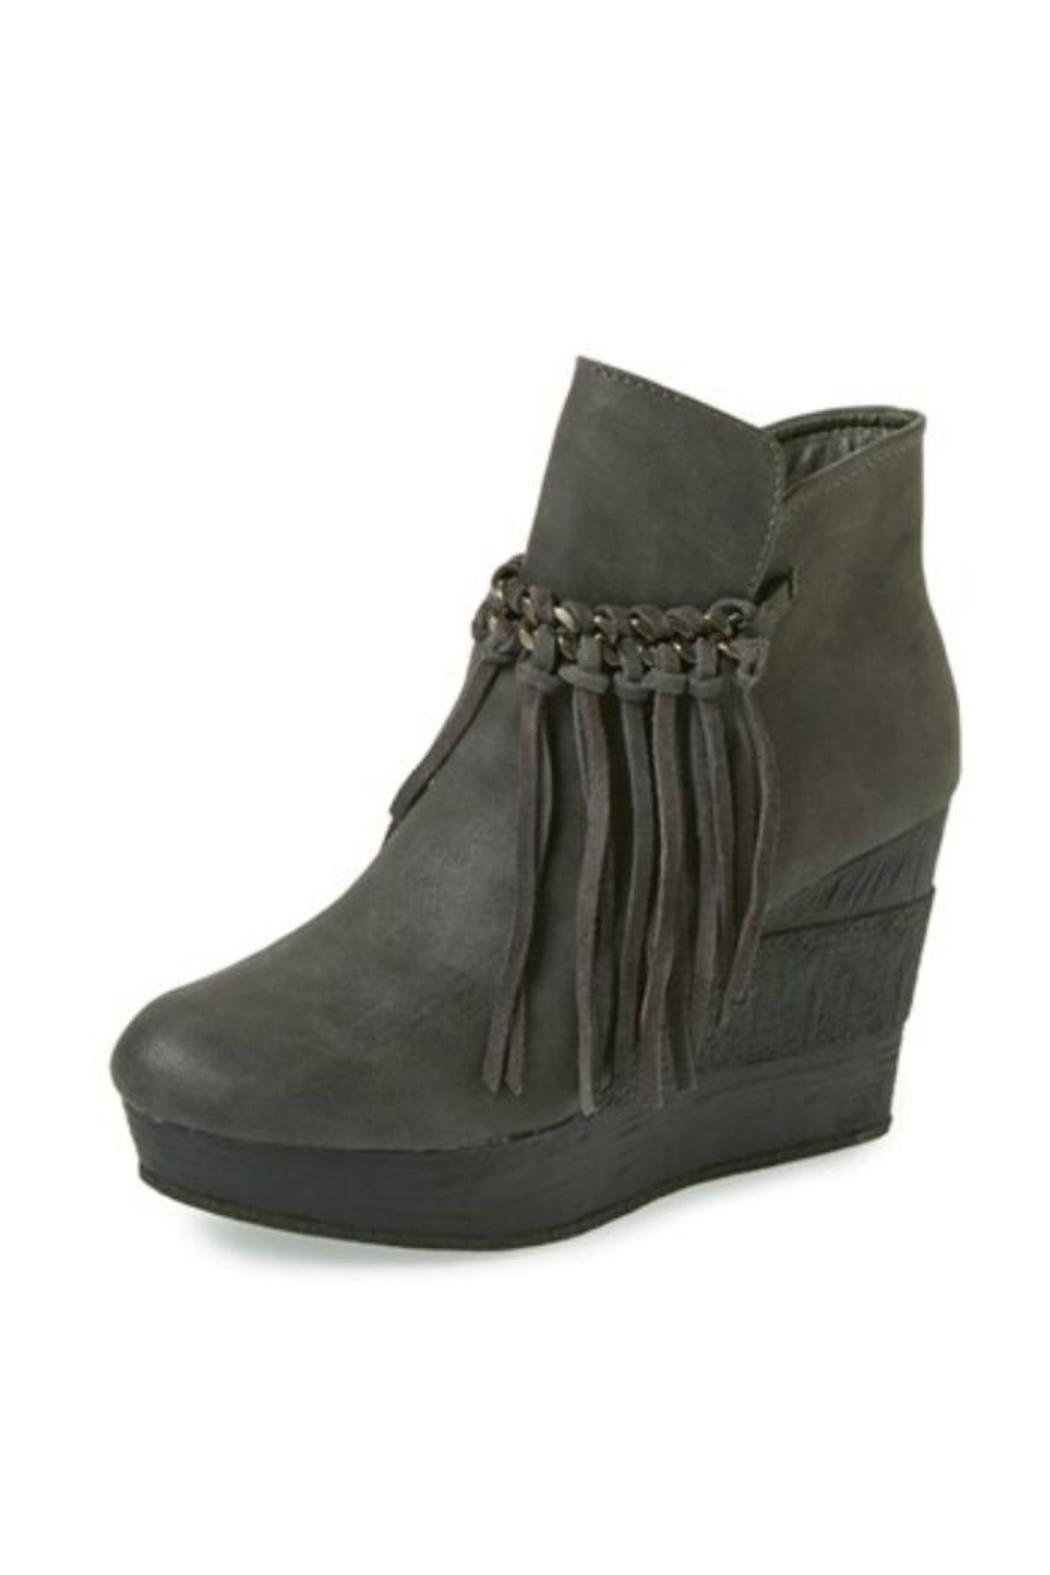 4ef4d6724d2 Sbicca Zepp Fringe Bootie from New Orleans by Nola shoes ...